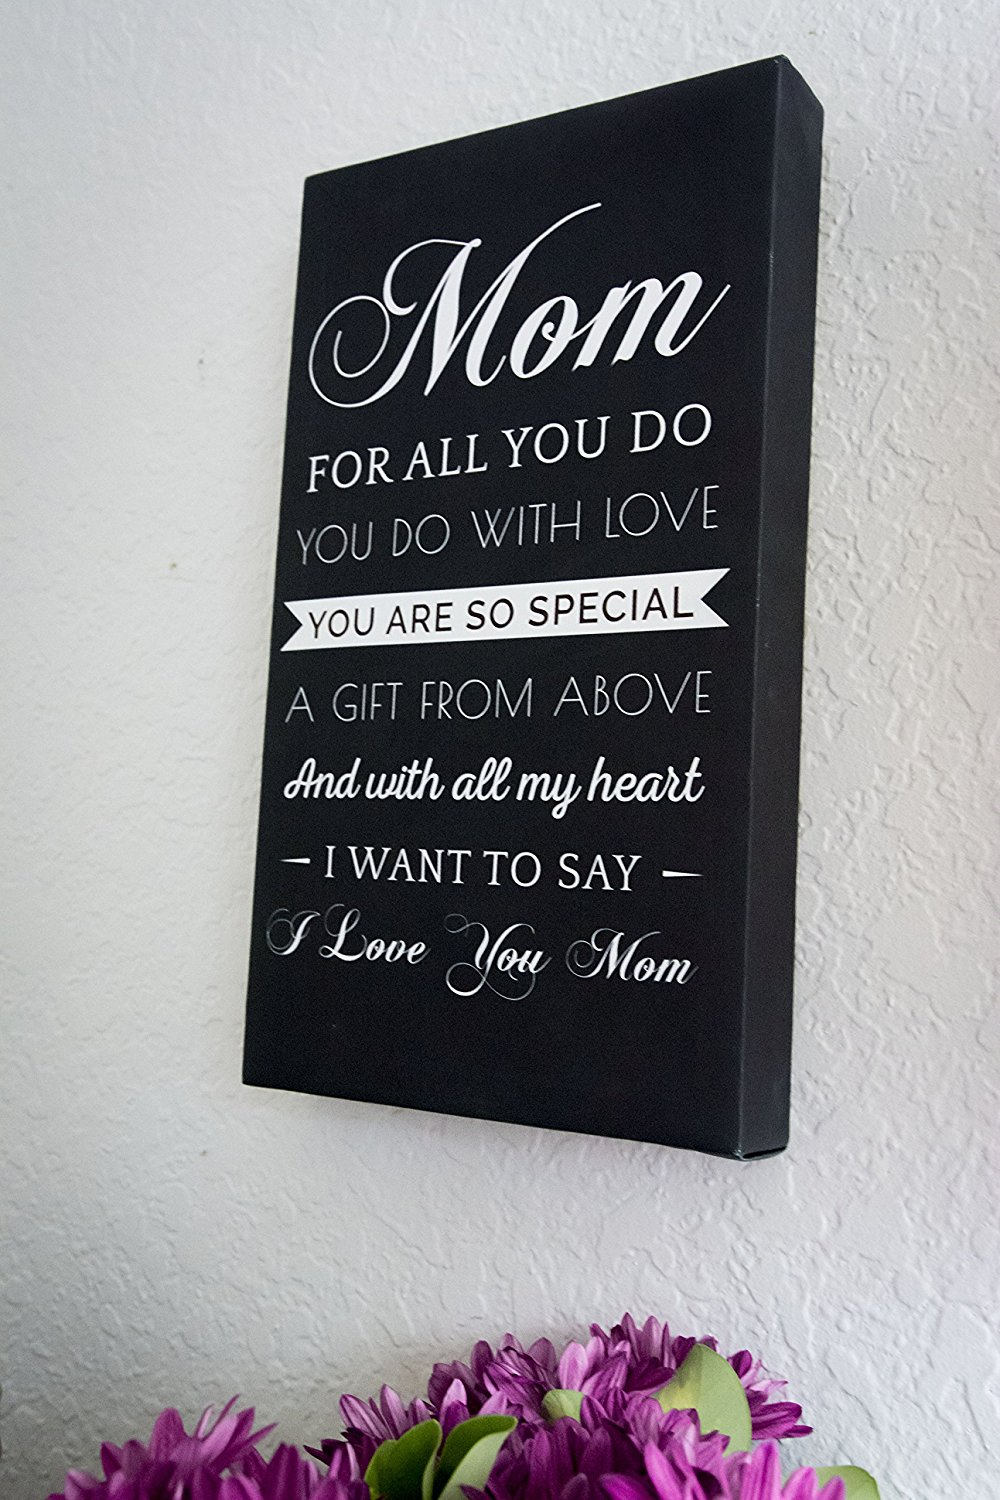 8 Sano Naturals Gifts for Mom From Daughter or Son - Poems for Mothers Day Print Wall Art - Unique Prime Mothers Day Meaningful Quotes Gift Ideas - Best Mom Ever Gifts Under 25